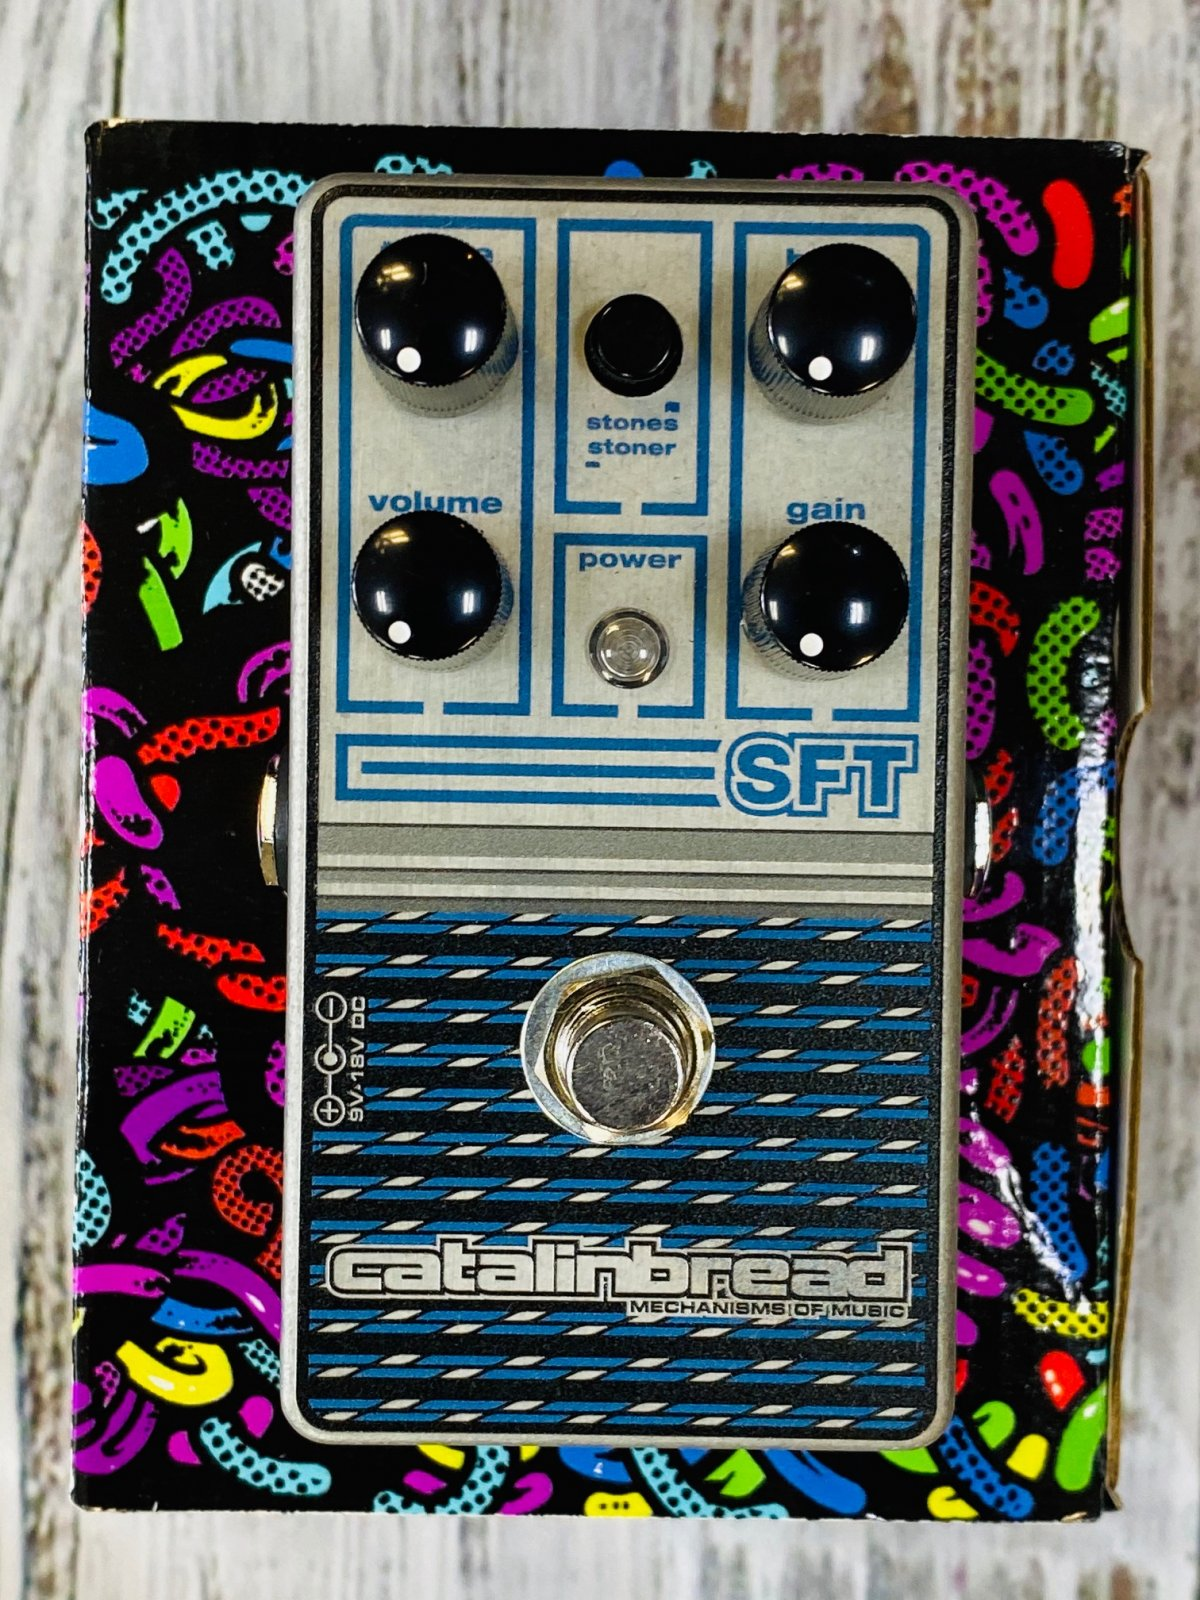 Catalinbread SFT Sapphire Ampeg-voiced Overdrive Pedal